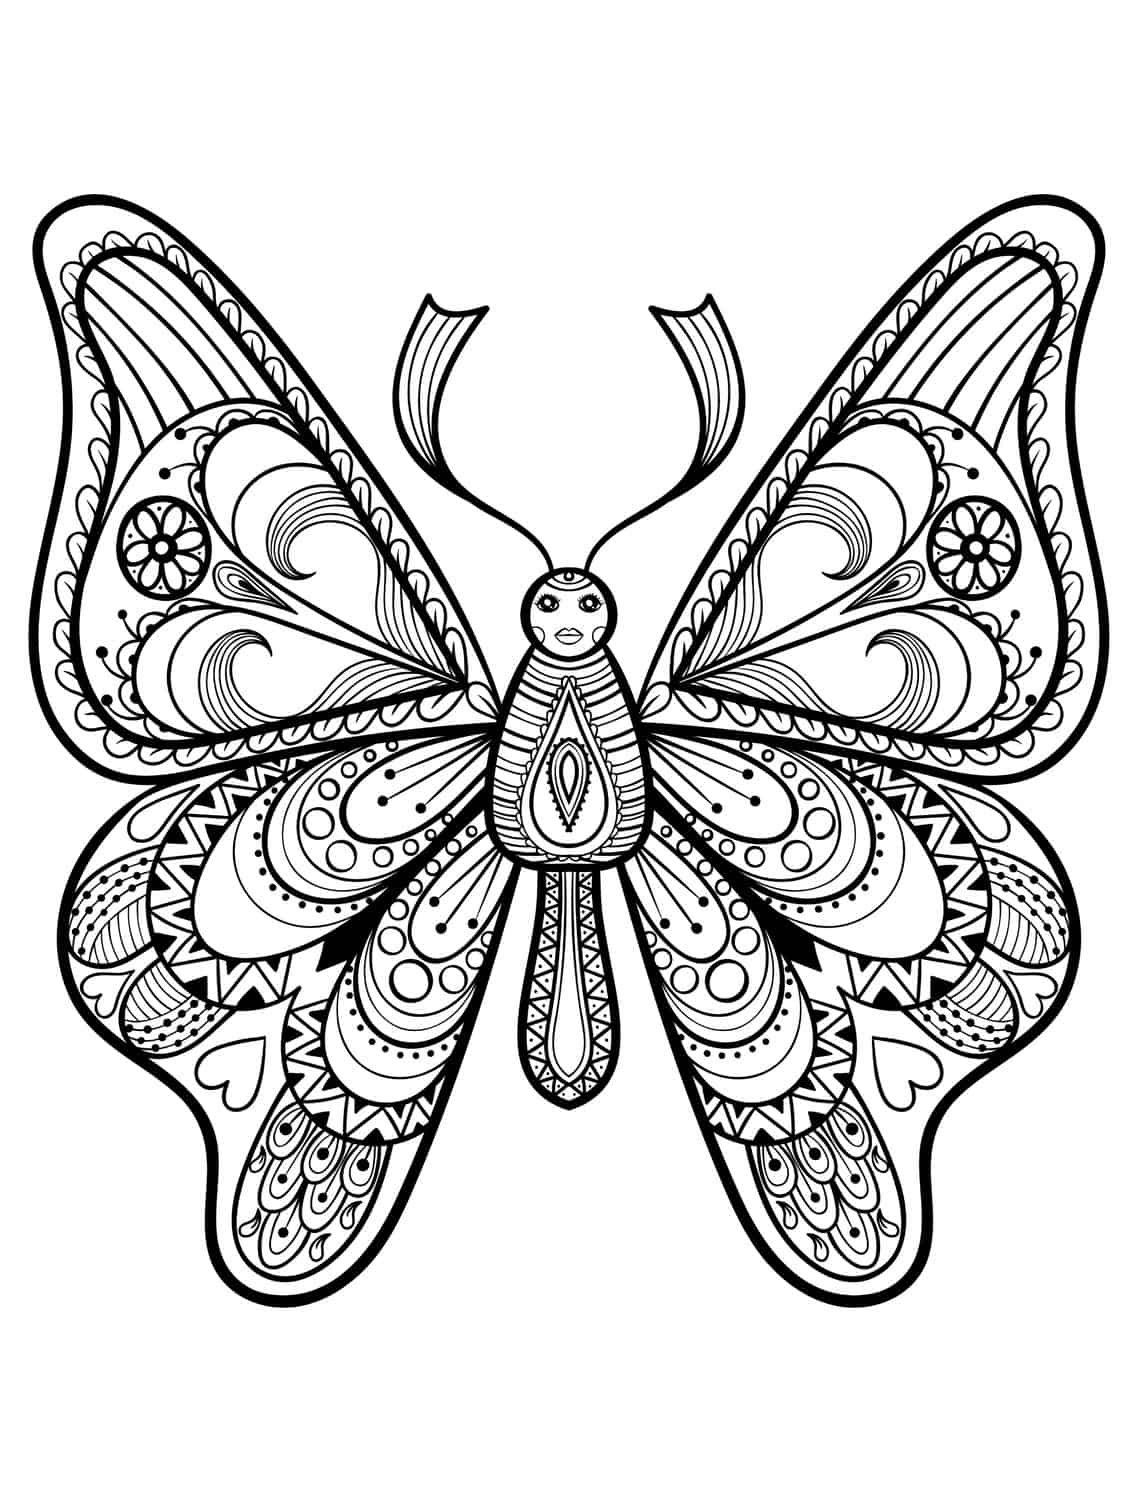 Free printable coloring pages for adults only adult coloring pages 24 - Free Printable Coloring Pages For Adults Only Adult Coloring Pages 7 Feed Pretty Coloring Pages Download